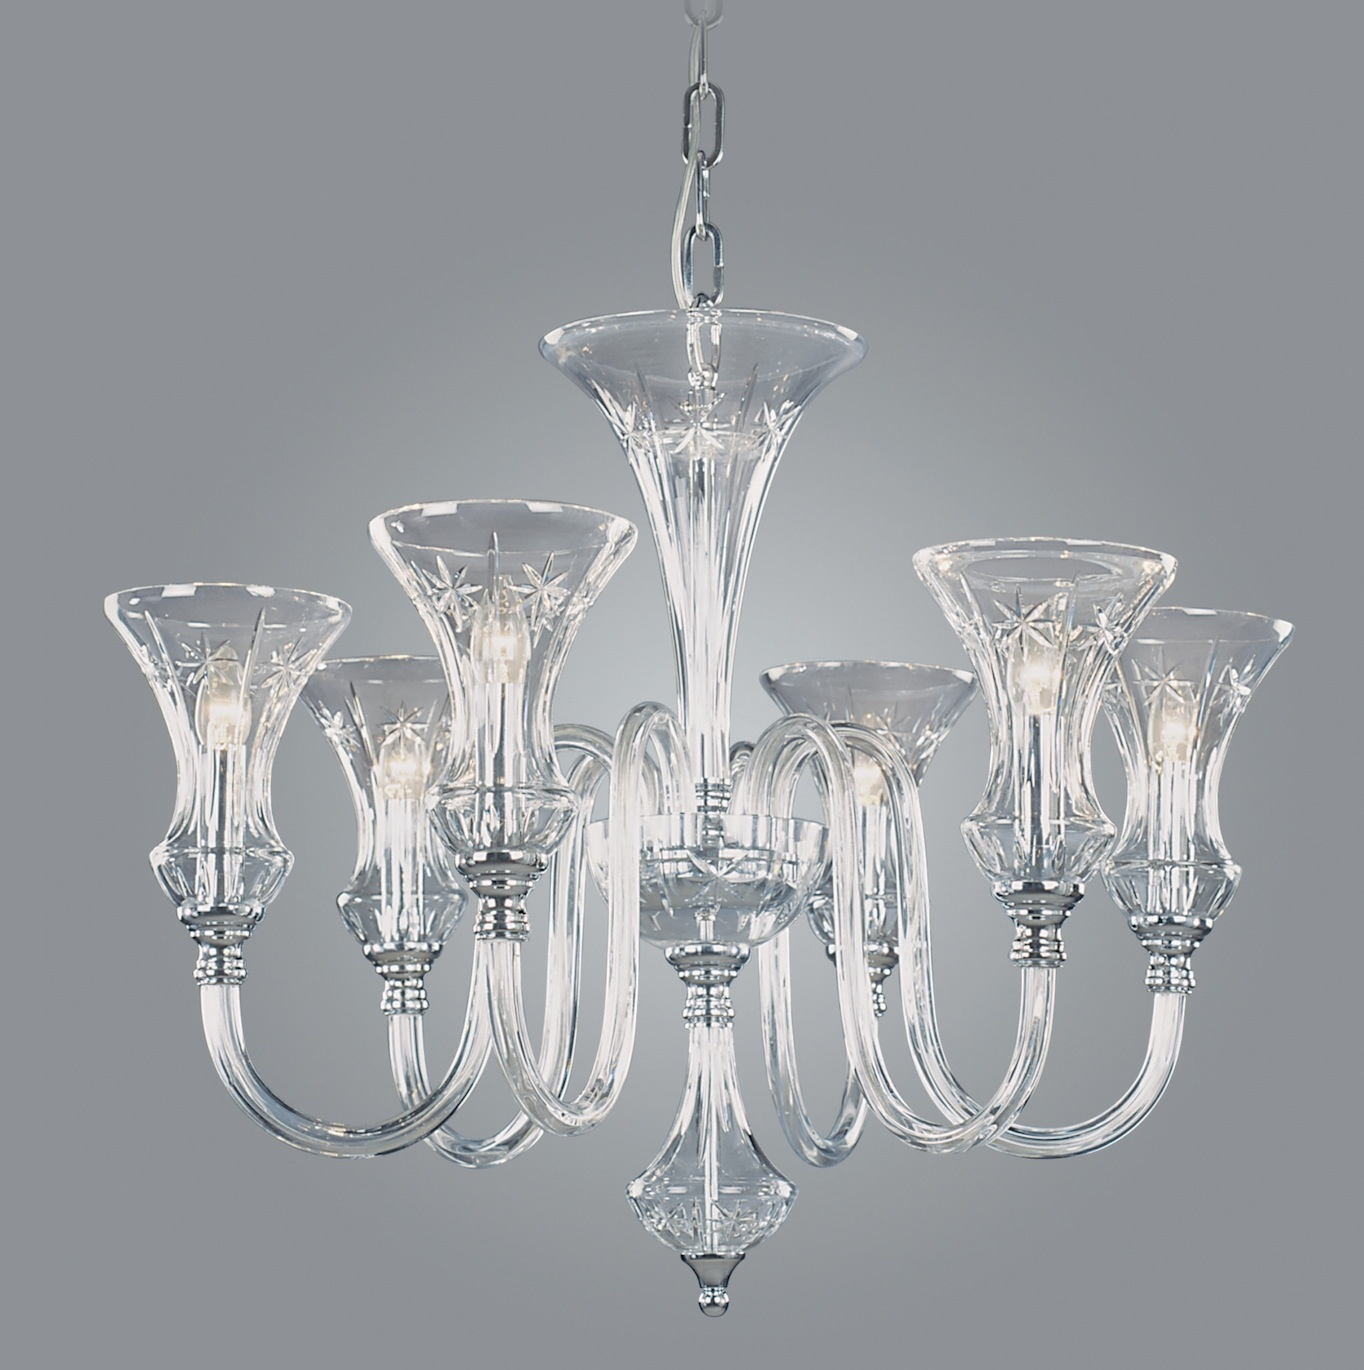 Modern Glass Chandelier Lighting Within Small Glass Chandeliers (Image 8 of 15)